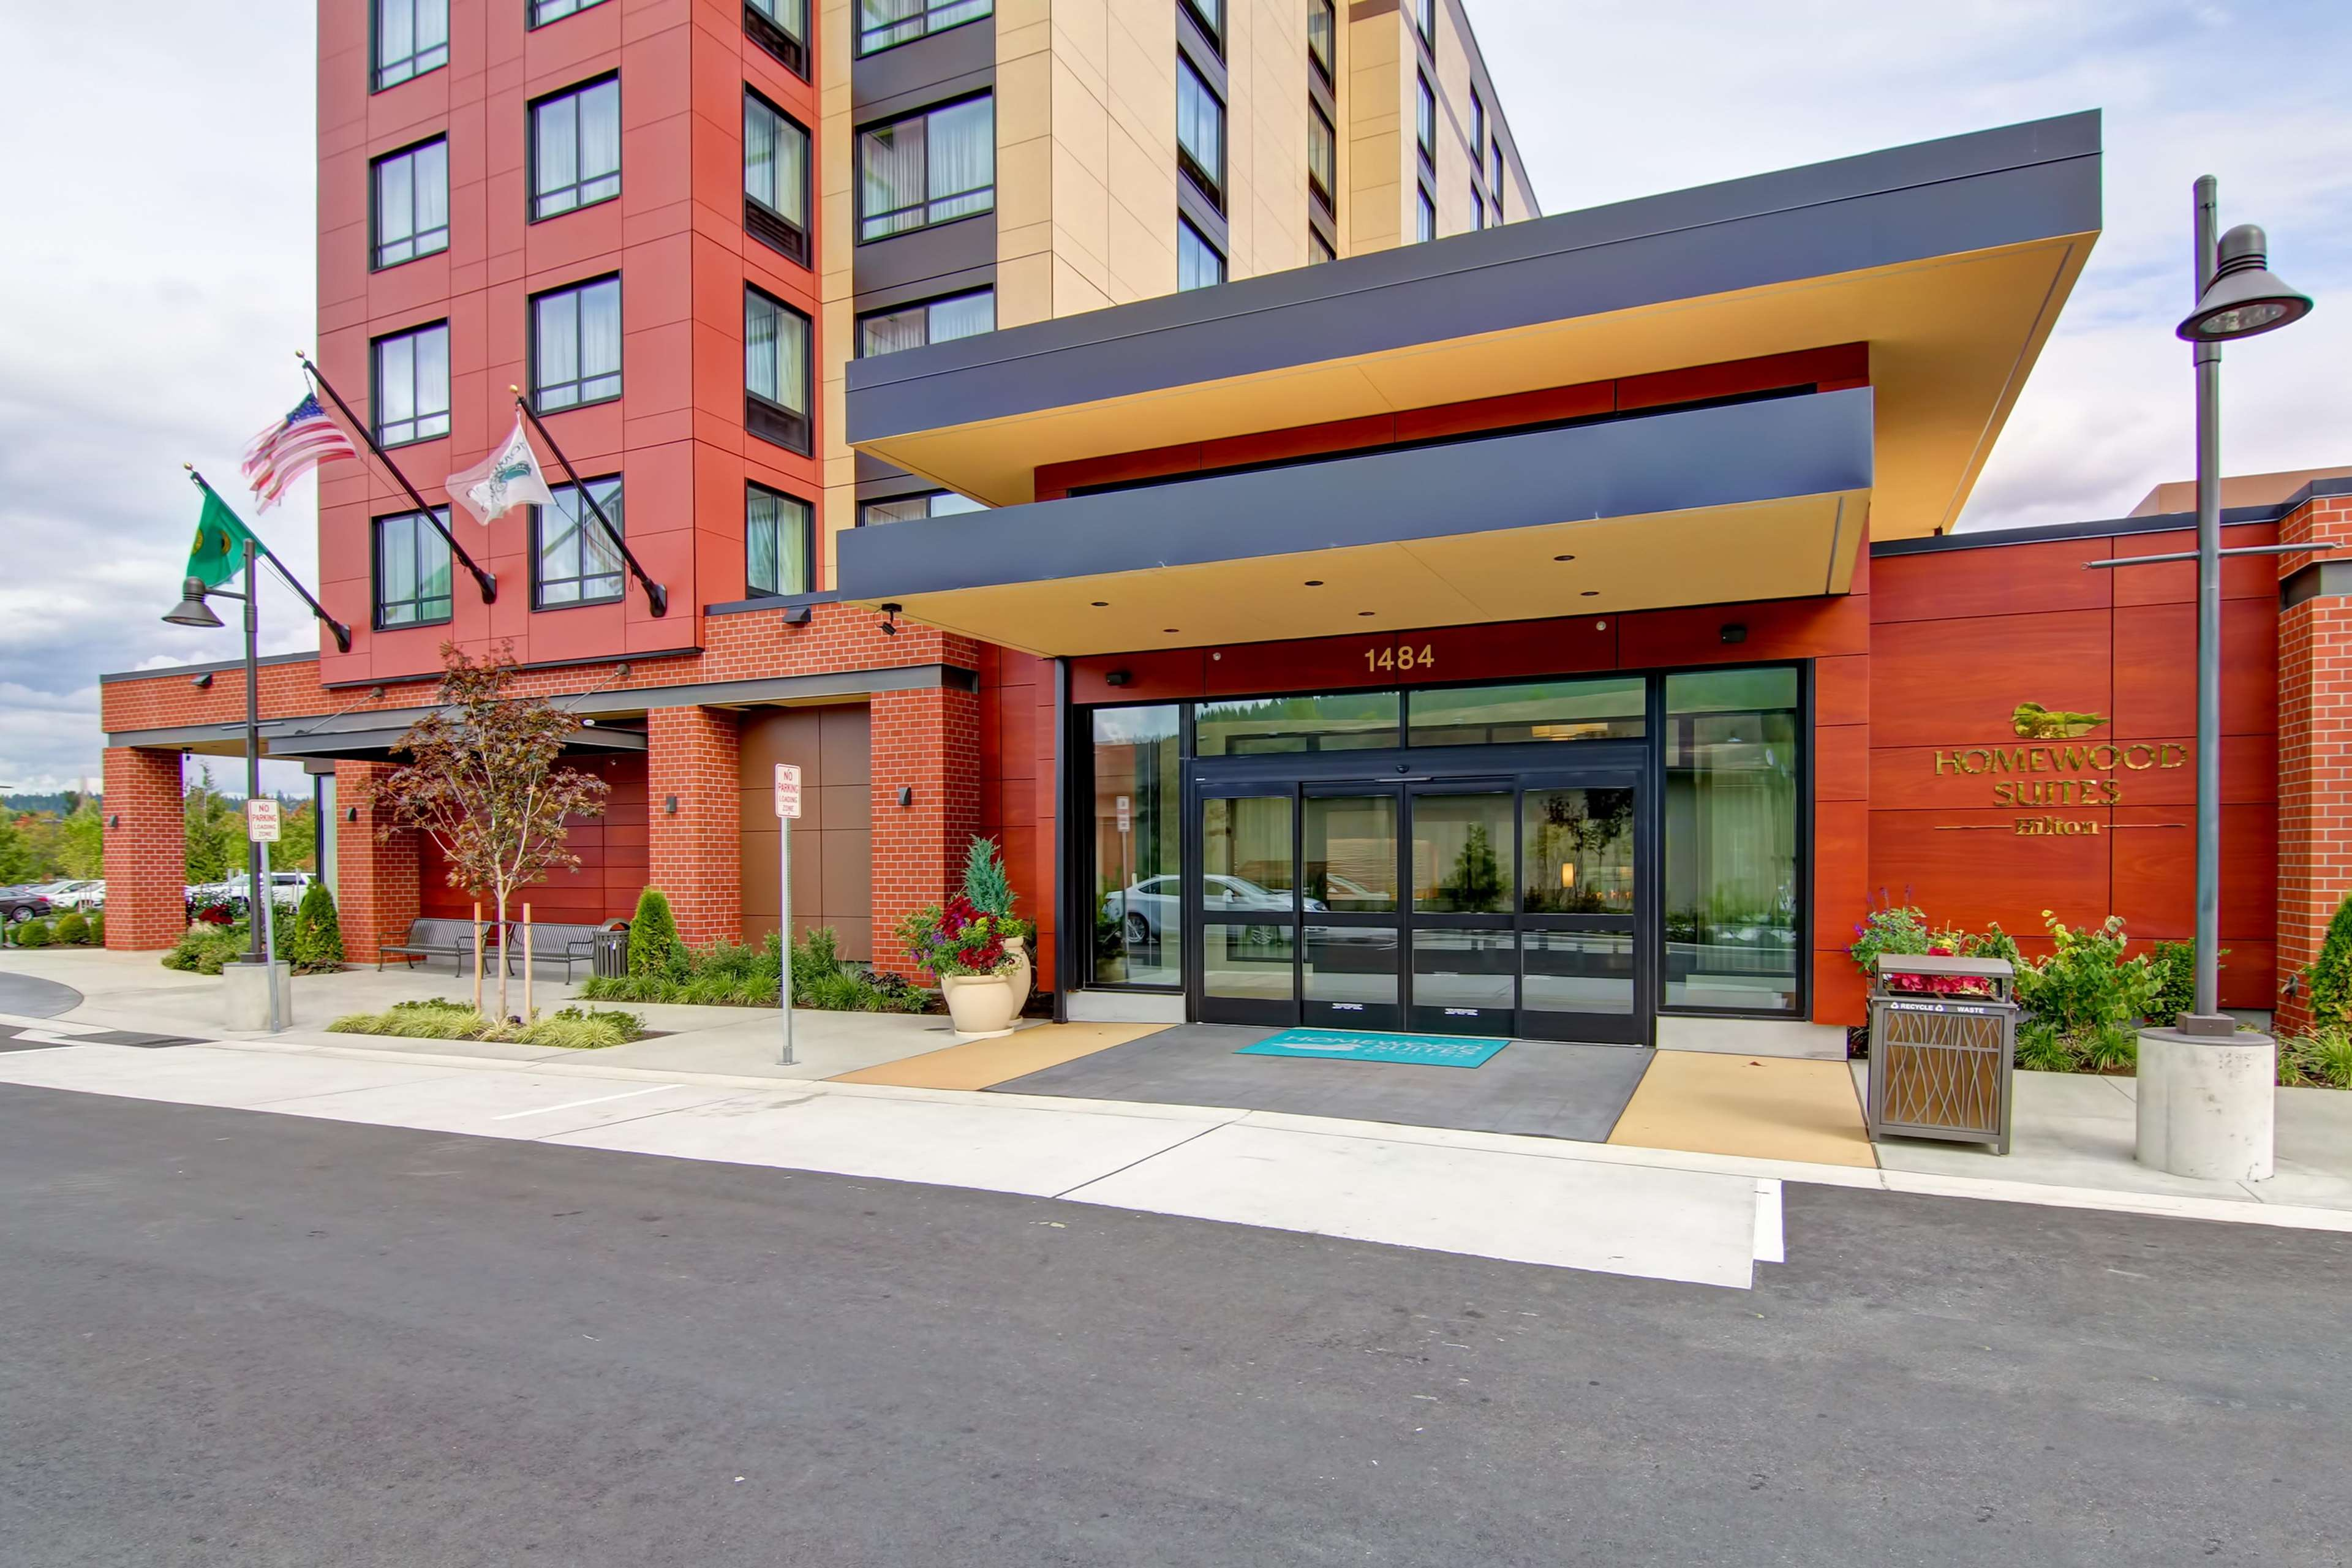 Homewood Suites by Hilton Seattle-Issaquah image 29